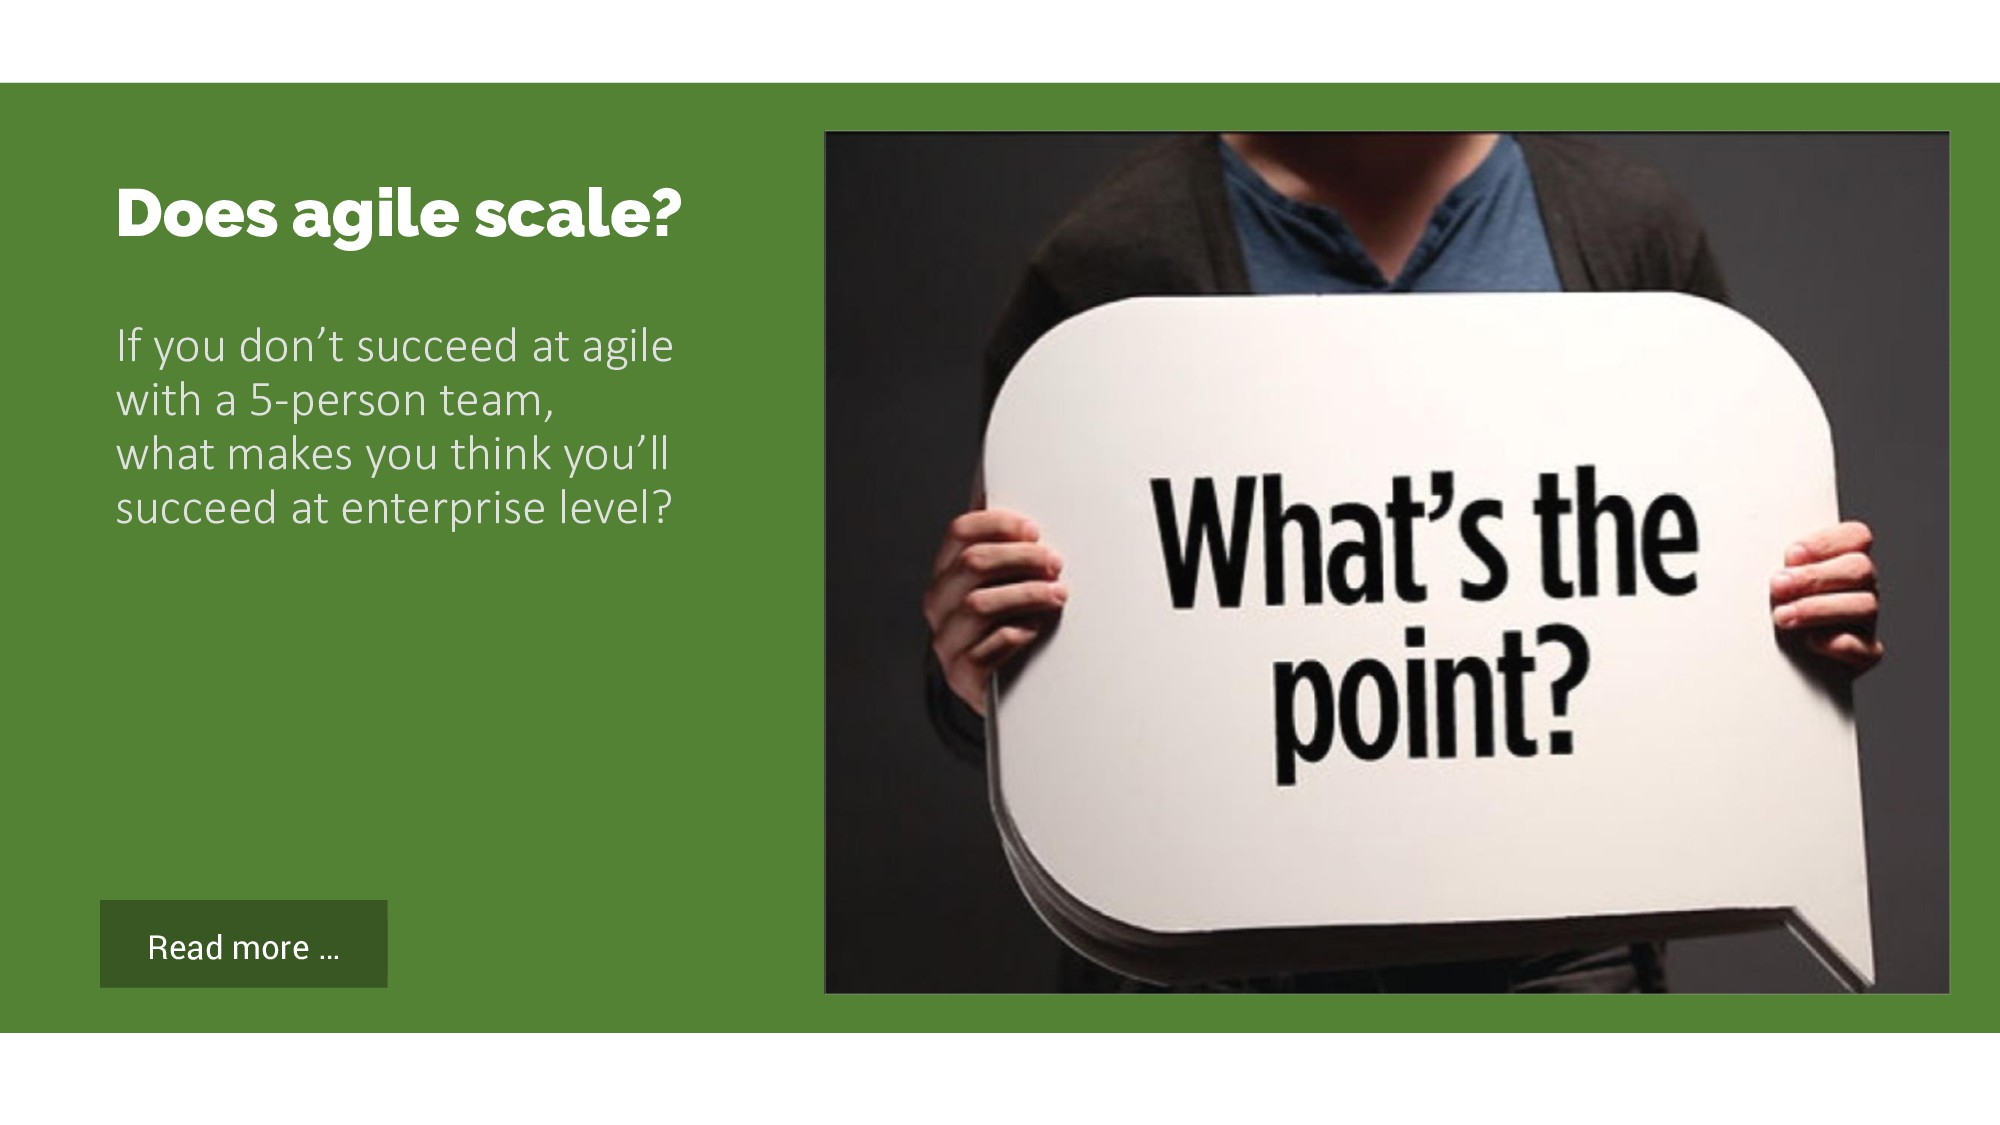 Read more … Does agile scale? If you don't succ...